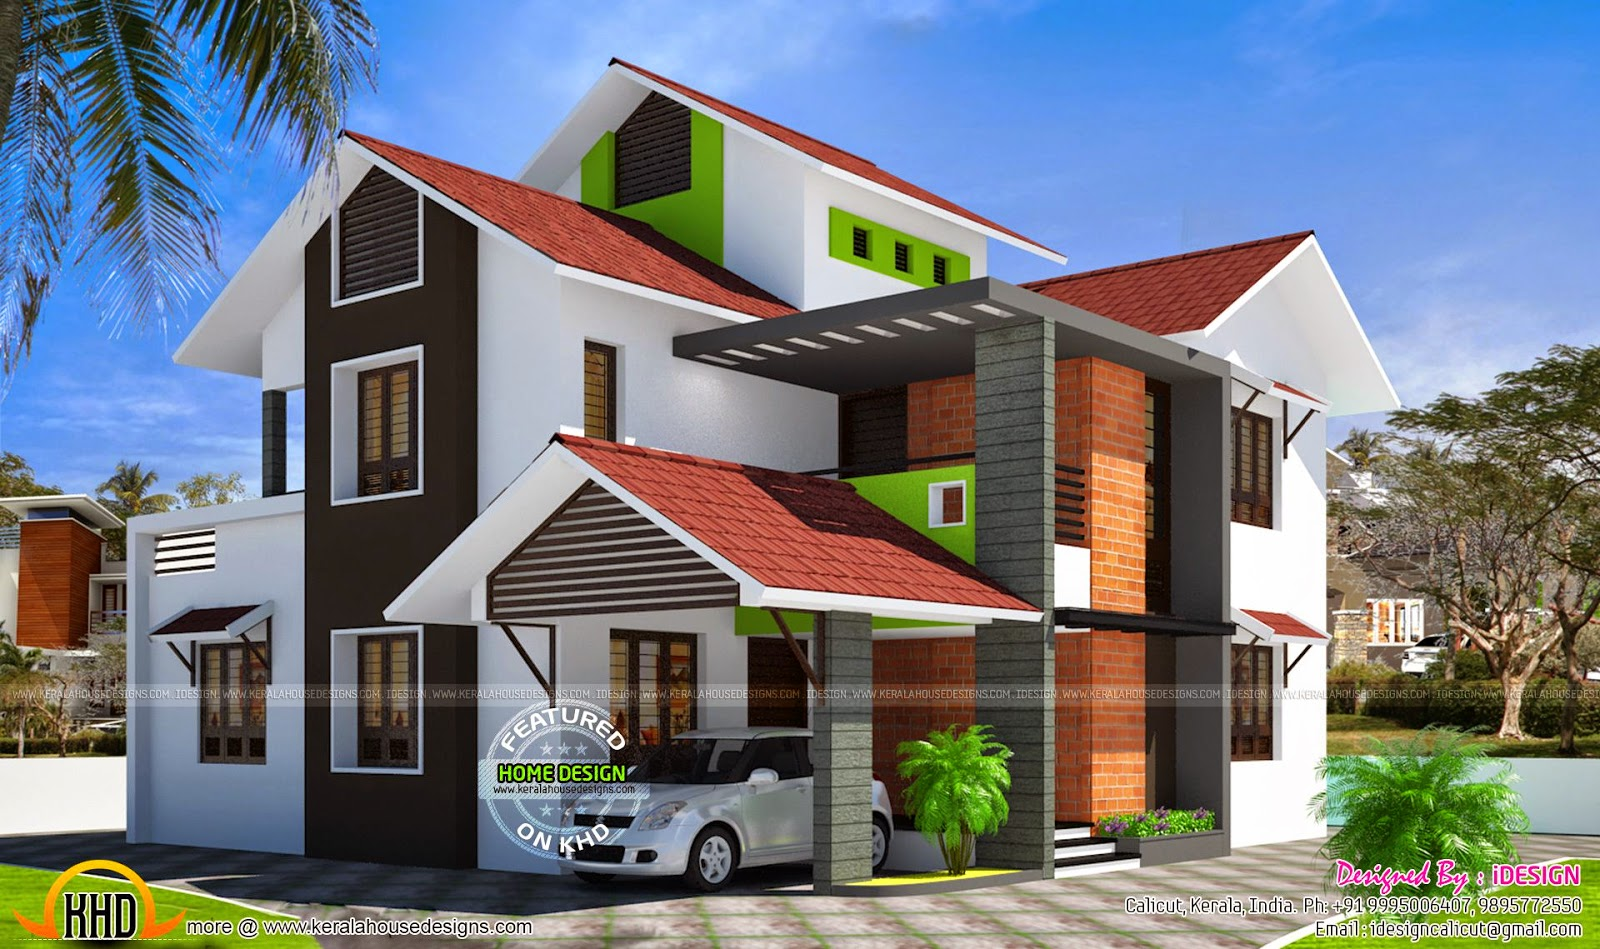 Kerala contemporary modern slope roof villa Kerala home design